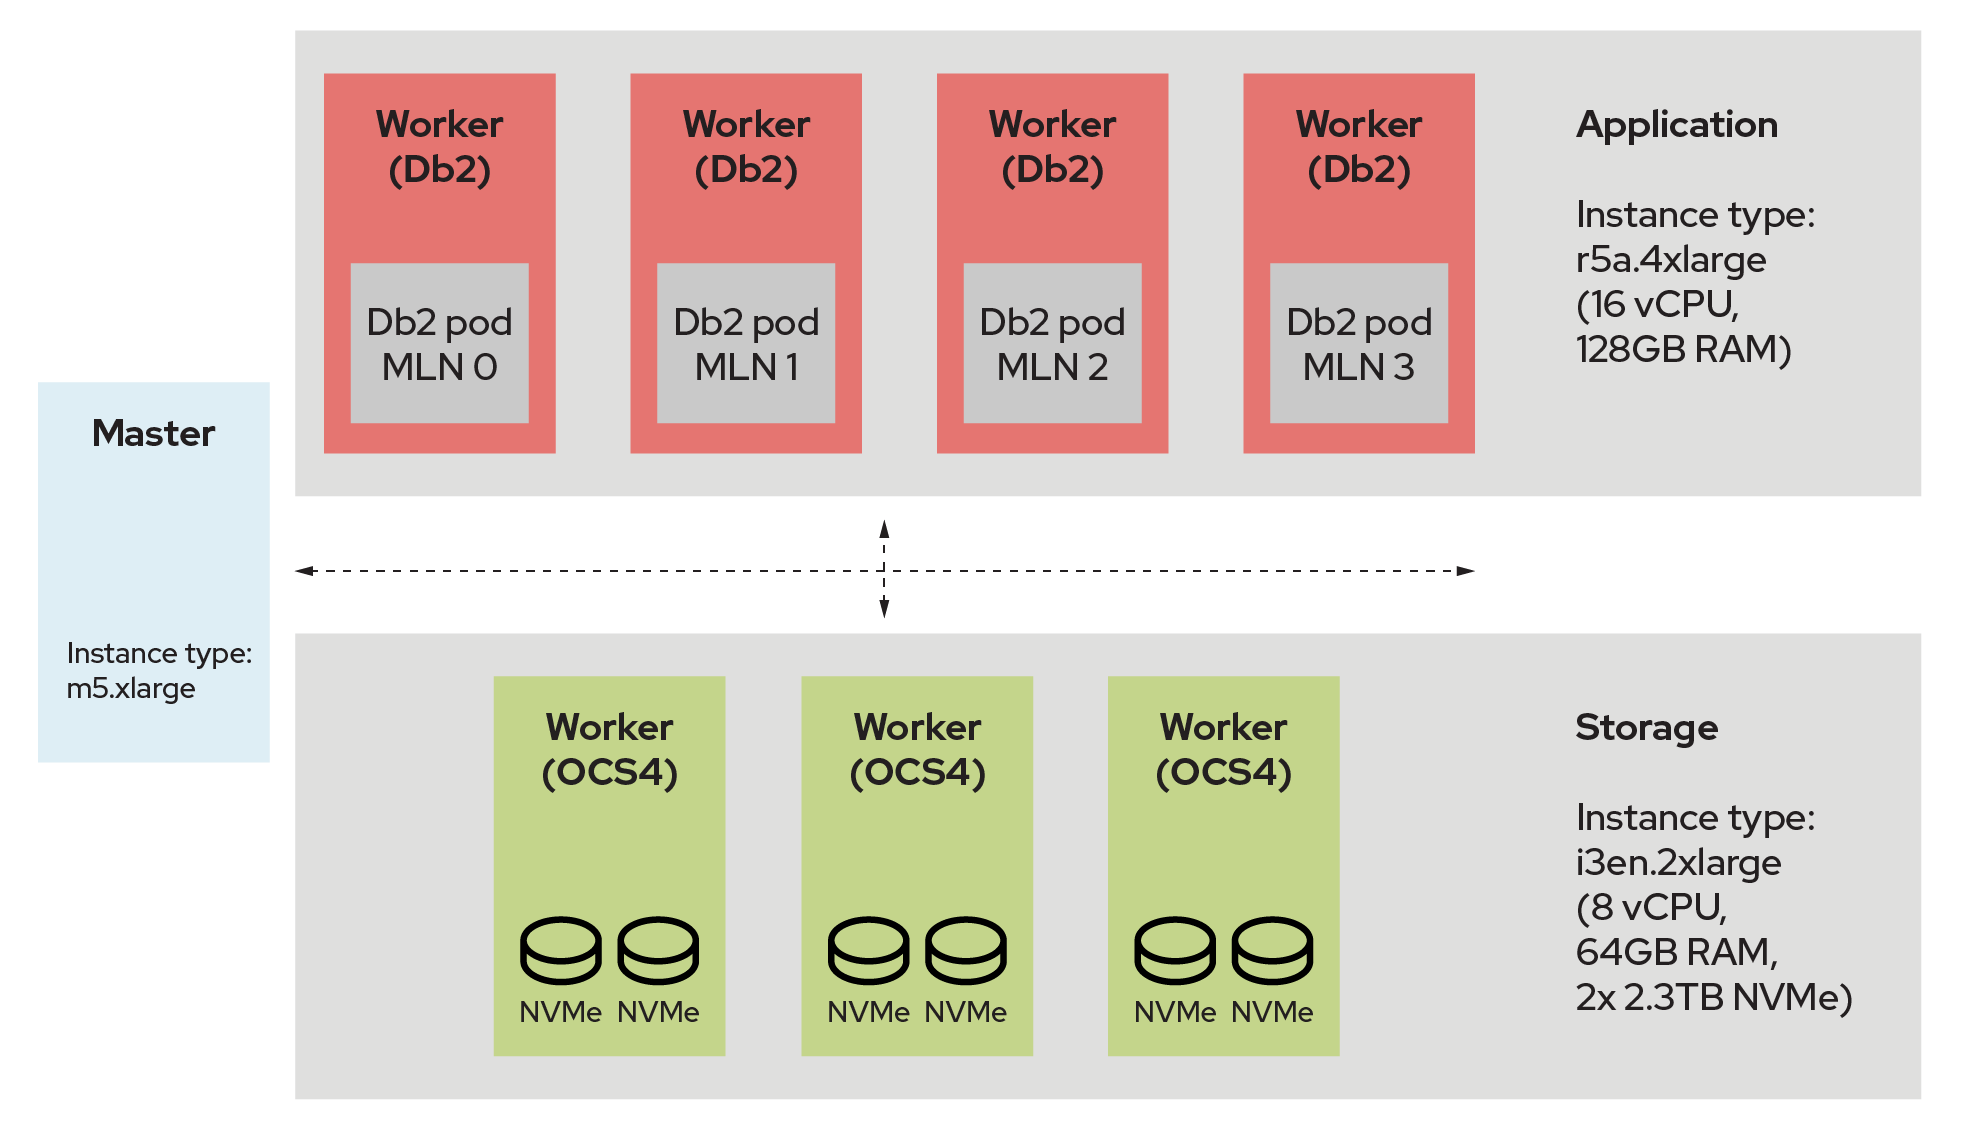 Diagram showing worker and storage instances for Db2 testing